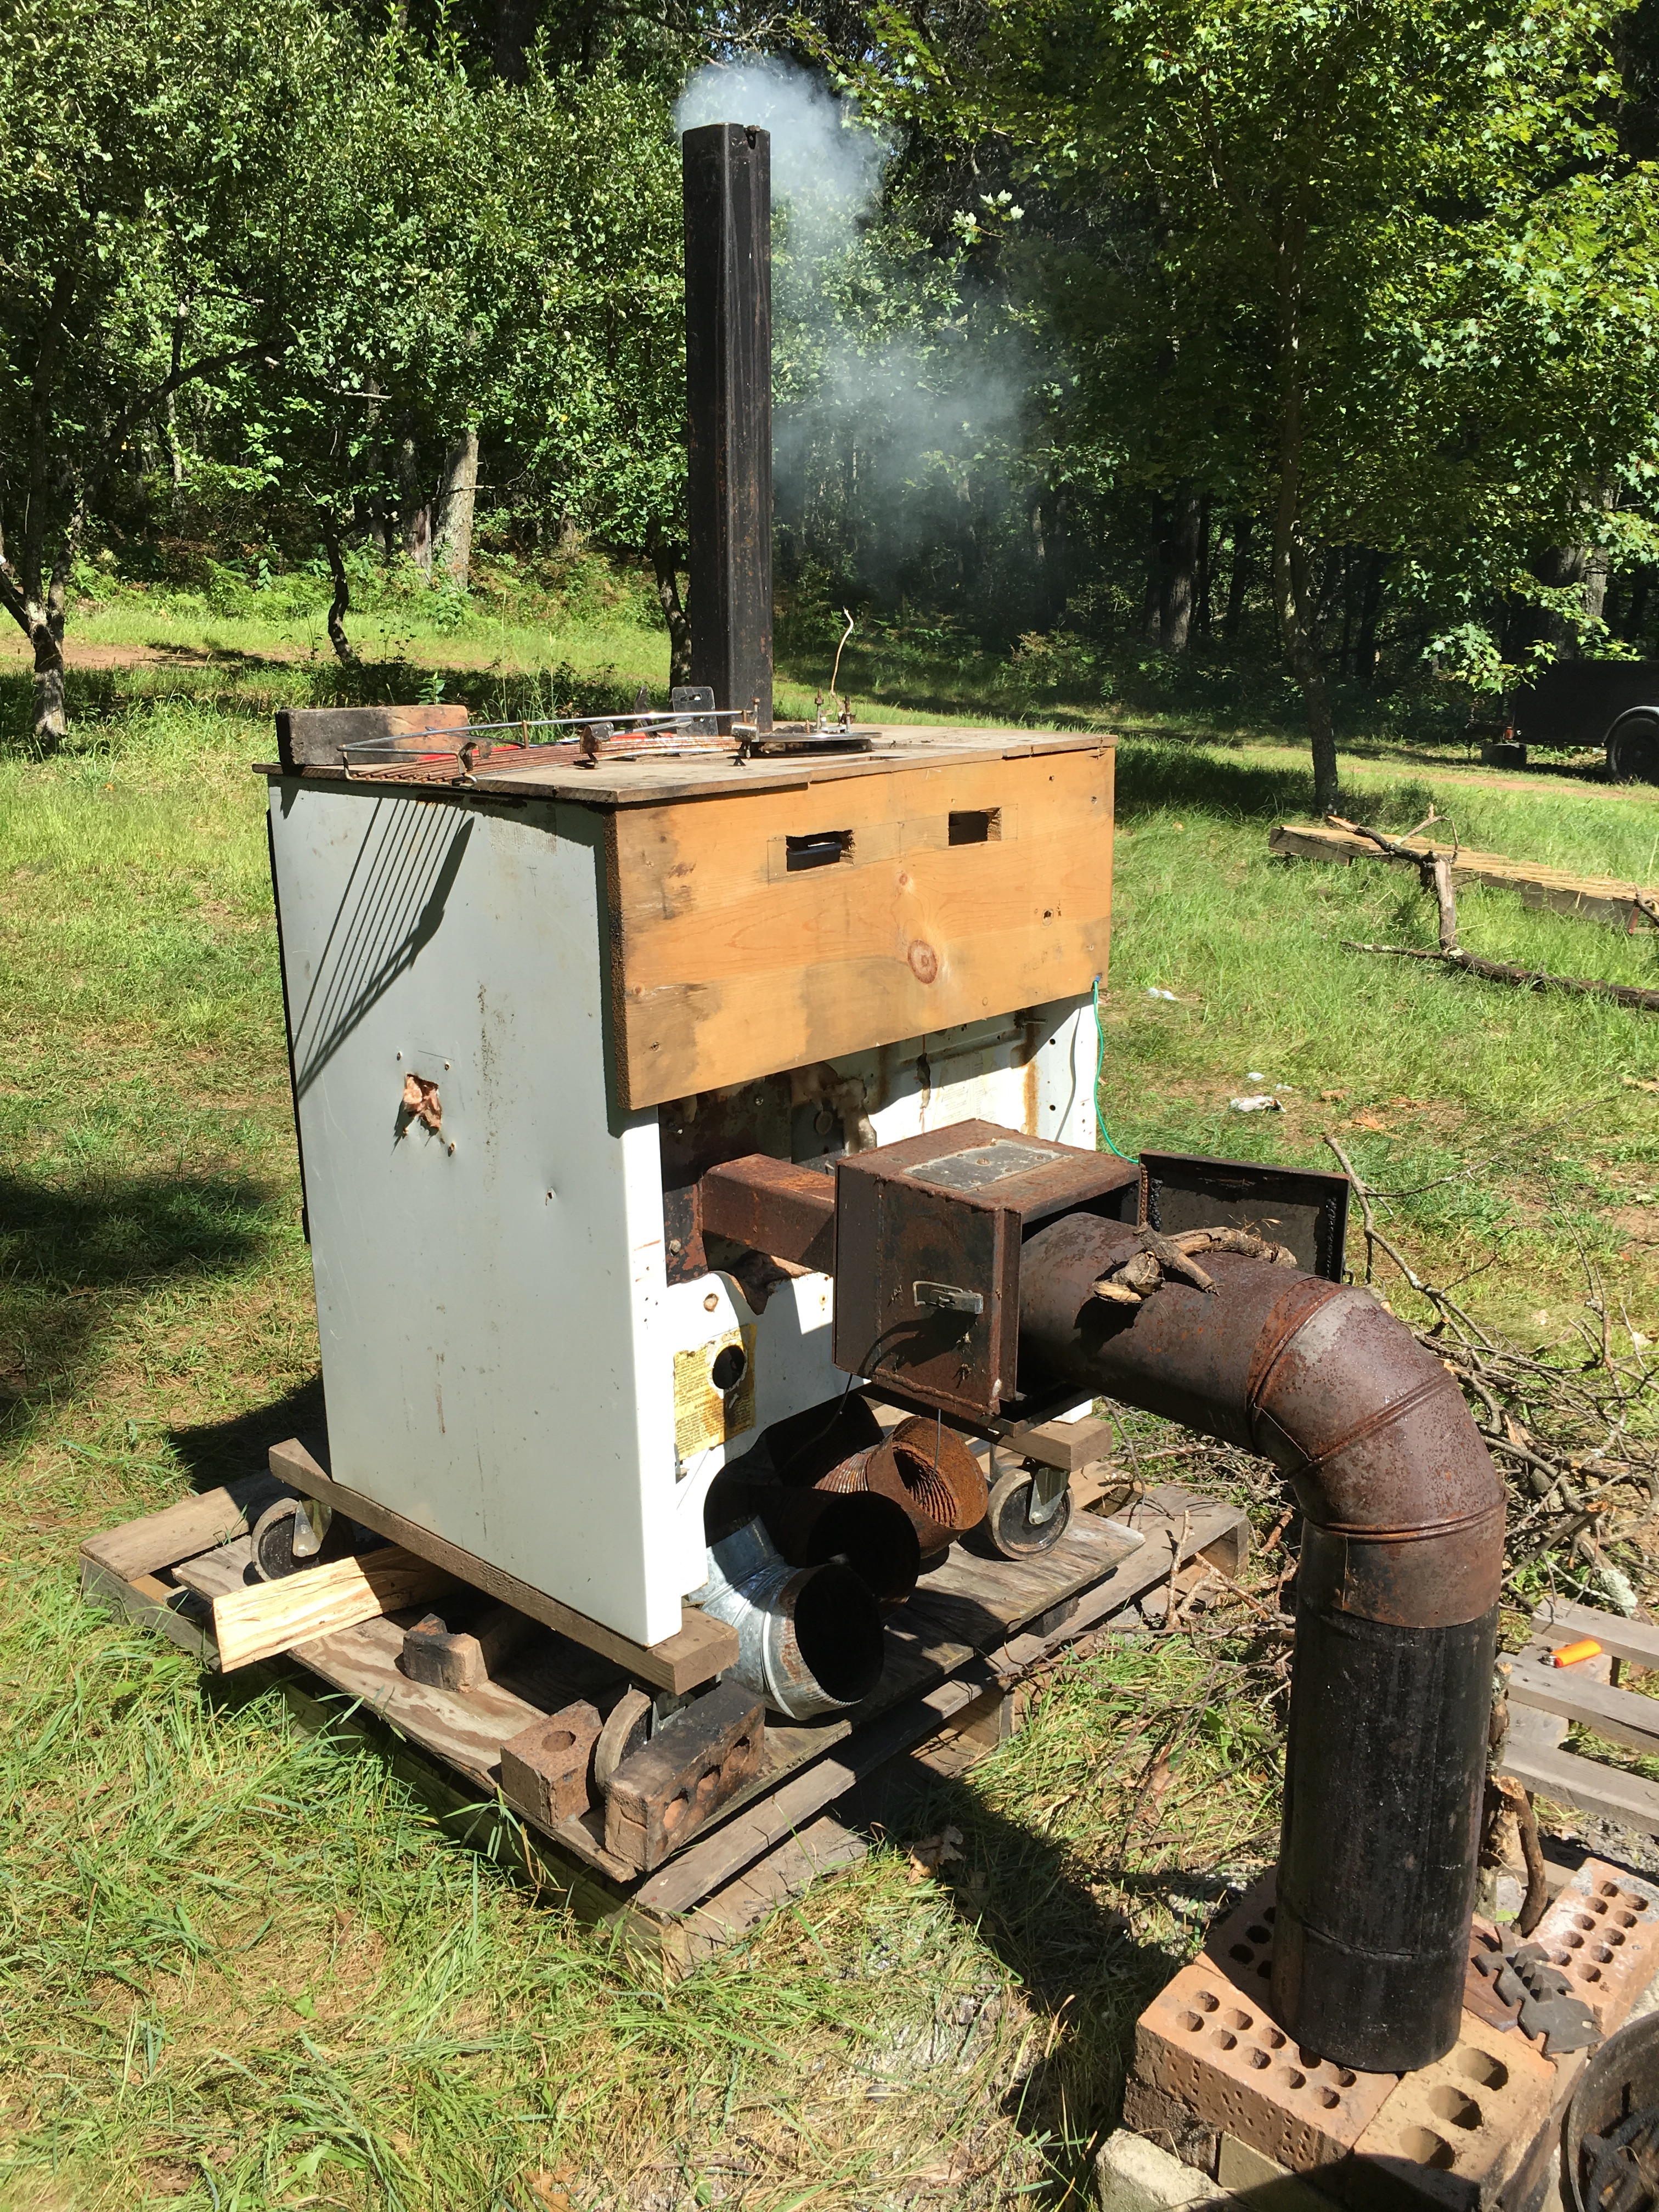 Free Craigslist Oven Turned Electric Smoker Converted To Run From A Rocket  Stove Instead   Our